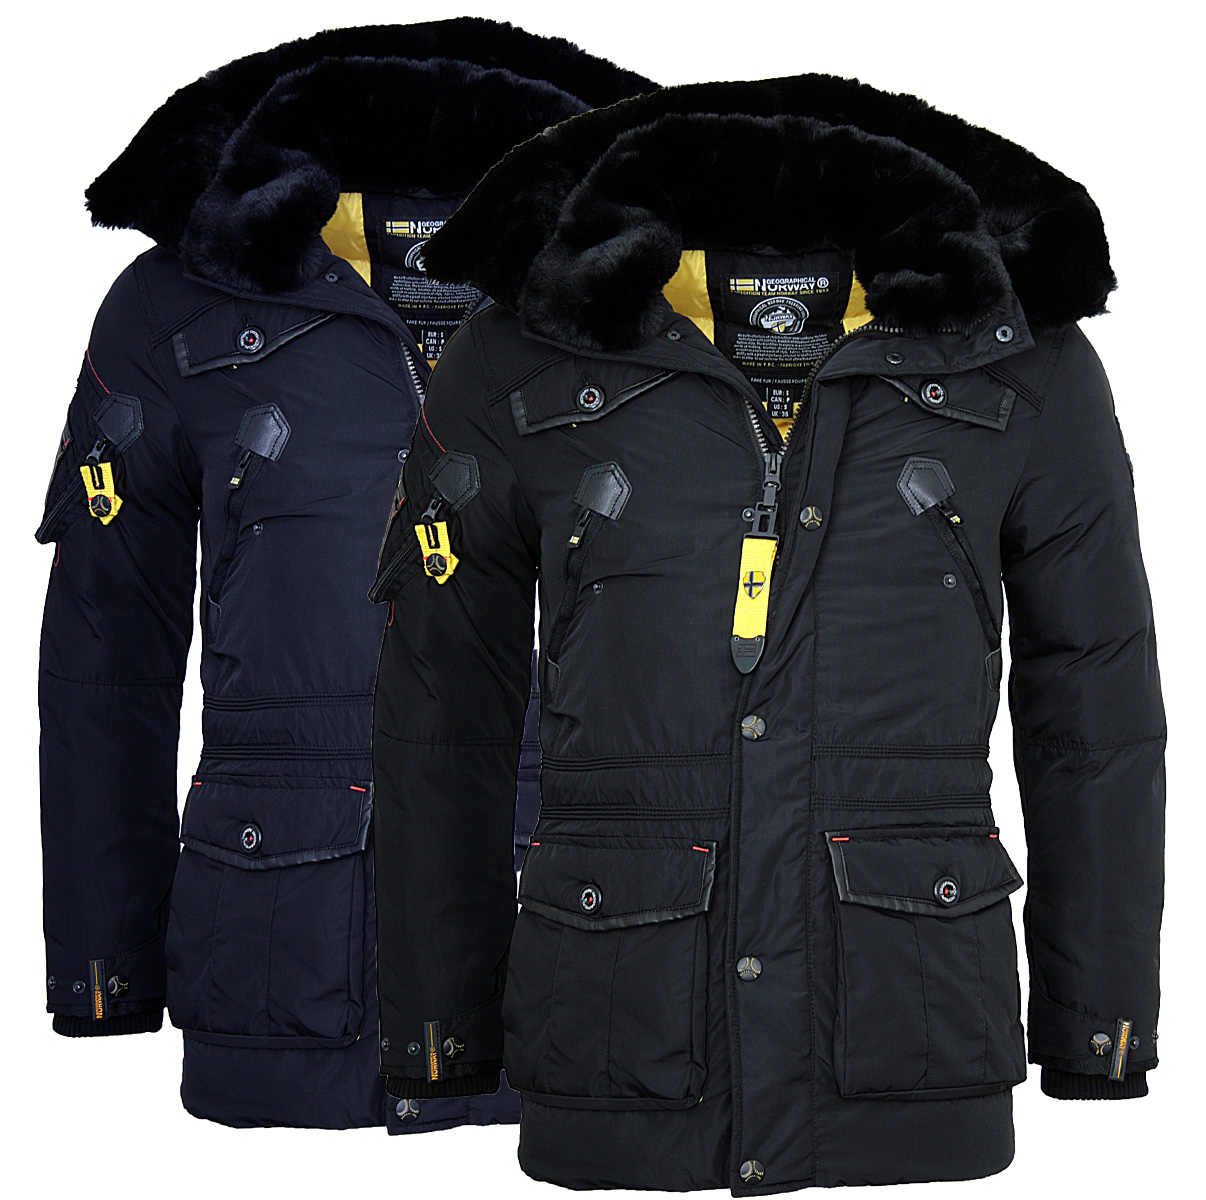 geographical norway warme herren winter jacke parka anorak. Black Bedroom Furniture Sets. Home Design Ideas